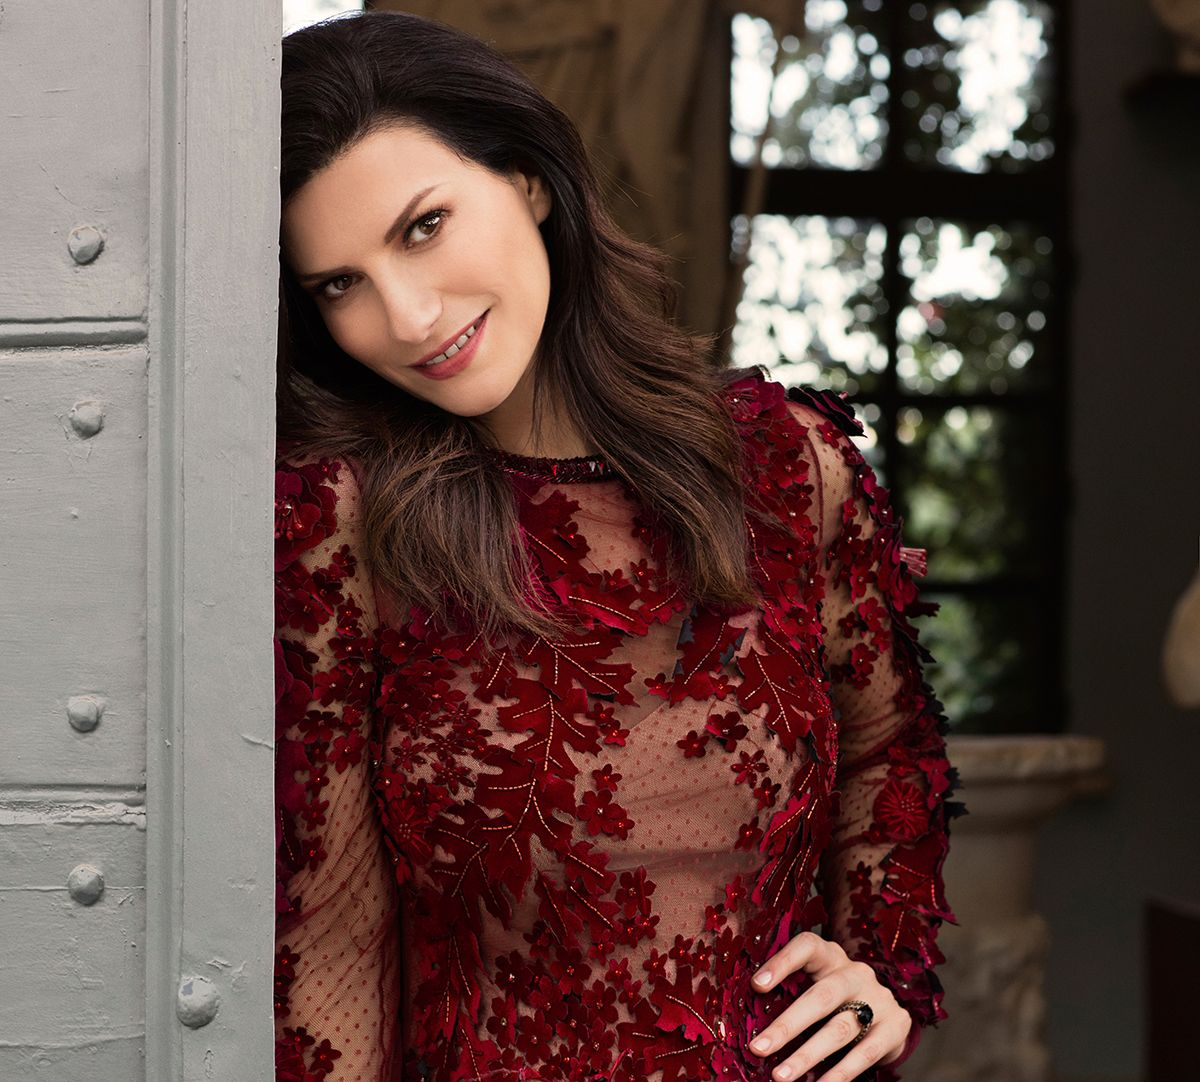 Laura Pausini debuts with Sophia Loren with a purpose: Touching souls | The State